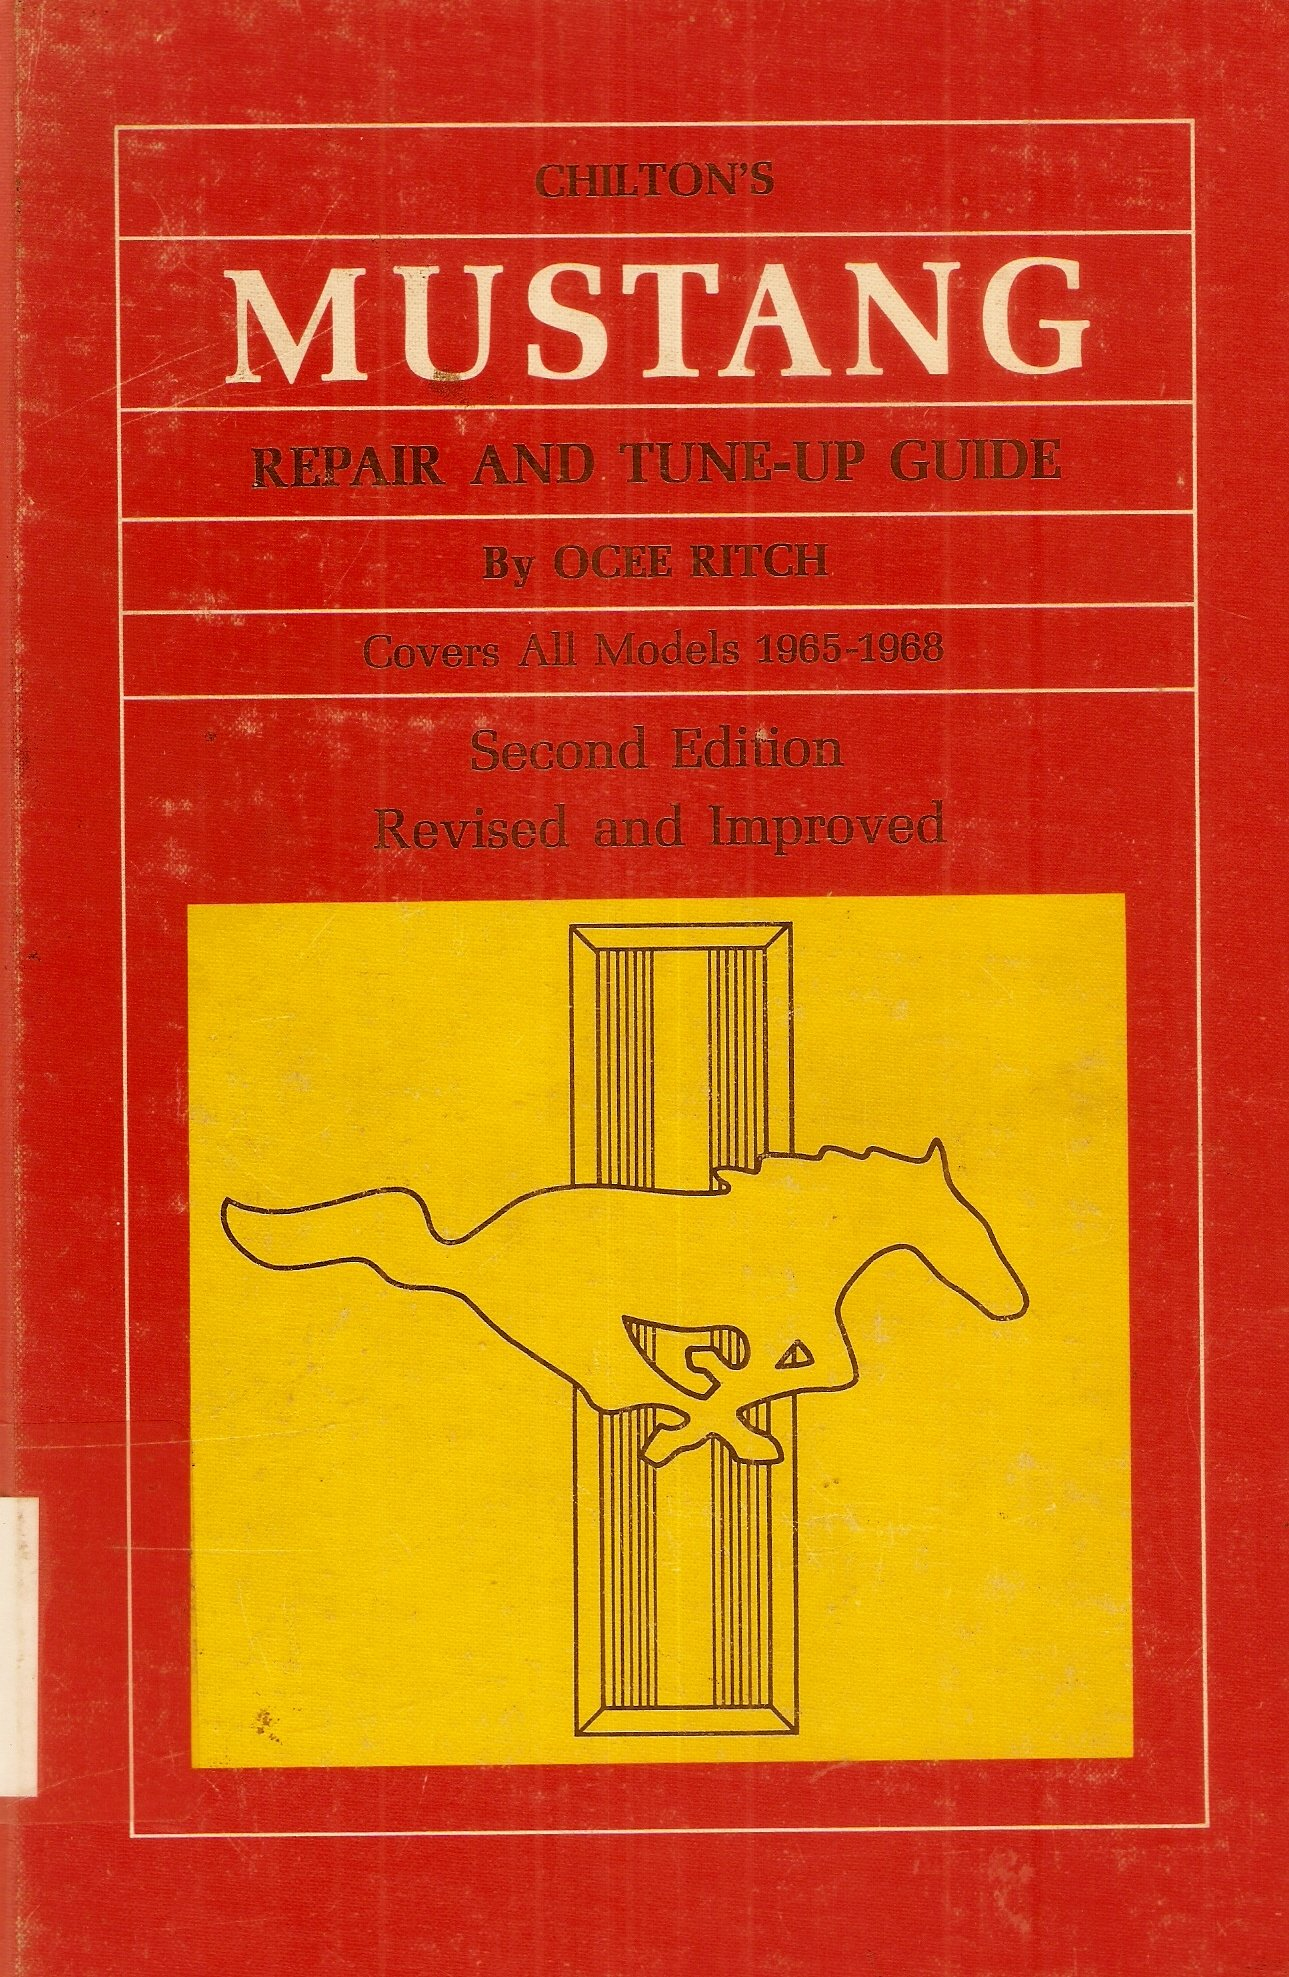 Chilton's Mustang Repair and Tune-Up Guide(Covers all Models 1965-1968):  Ocee Ritch: Amazon.com: Books